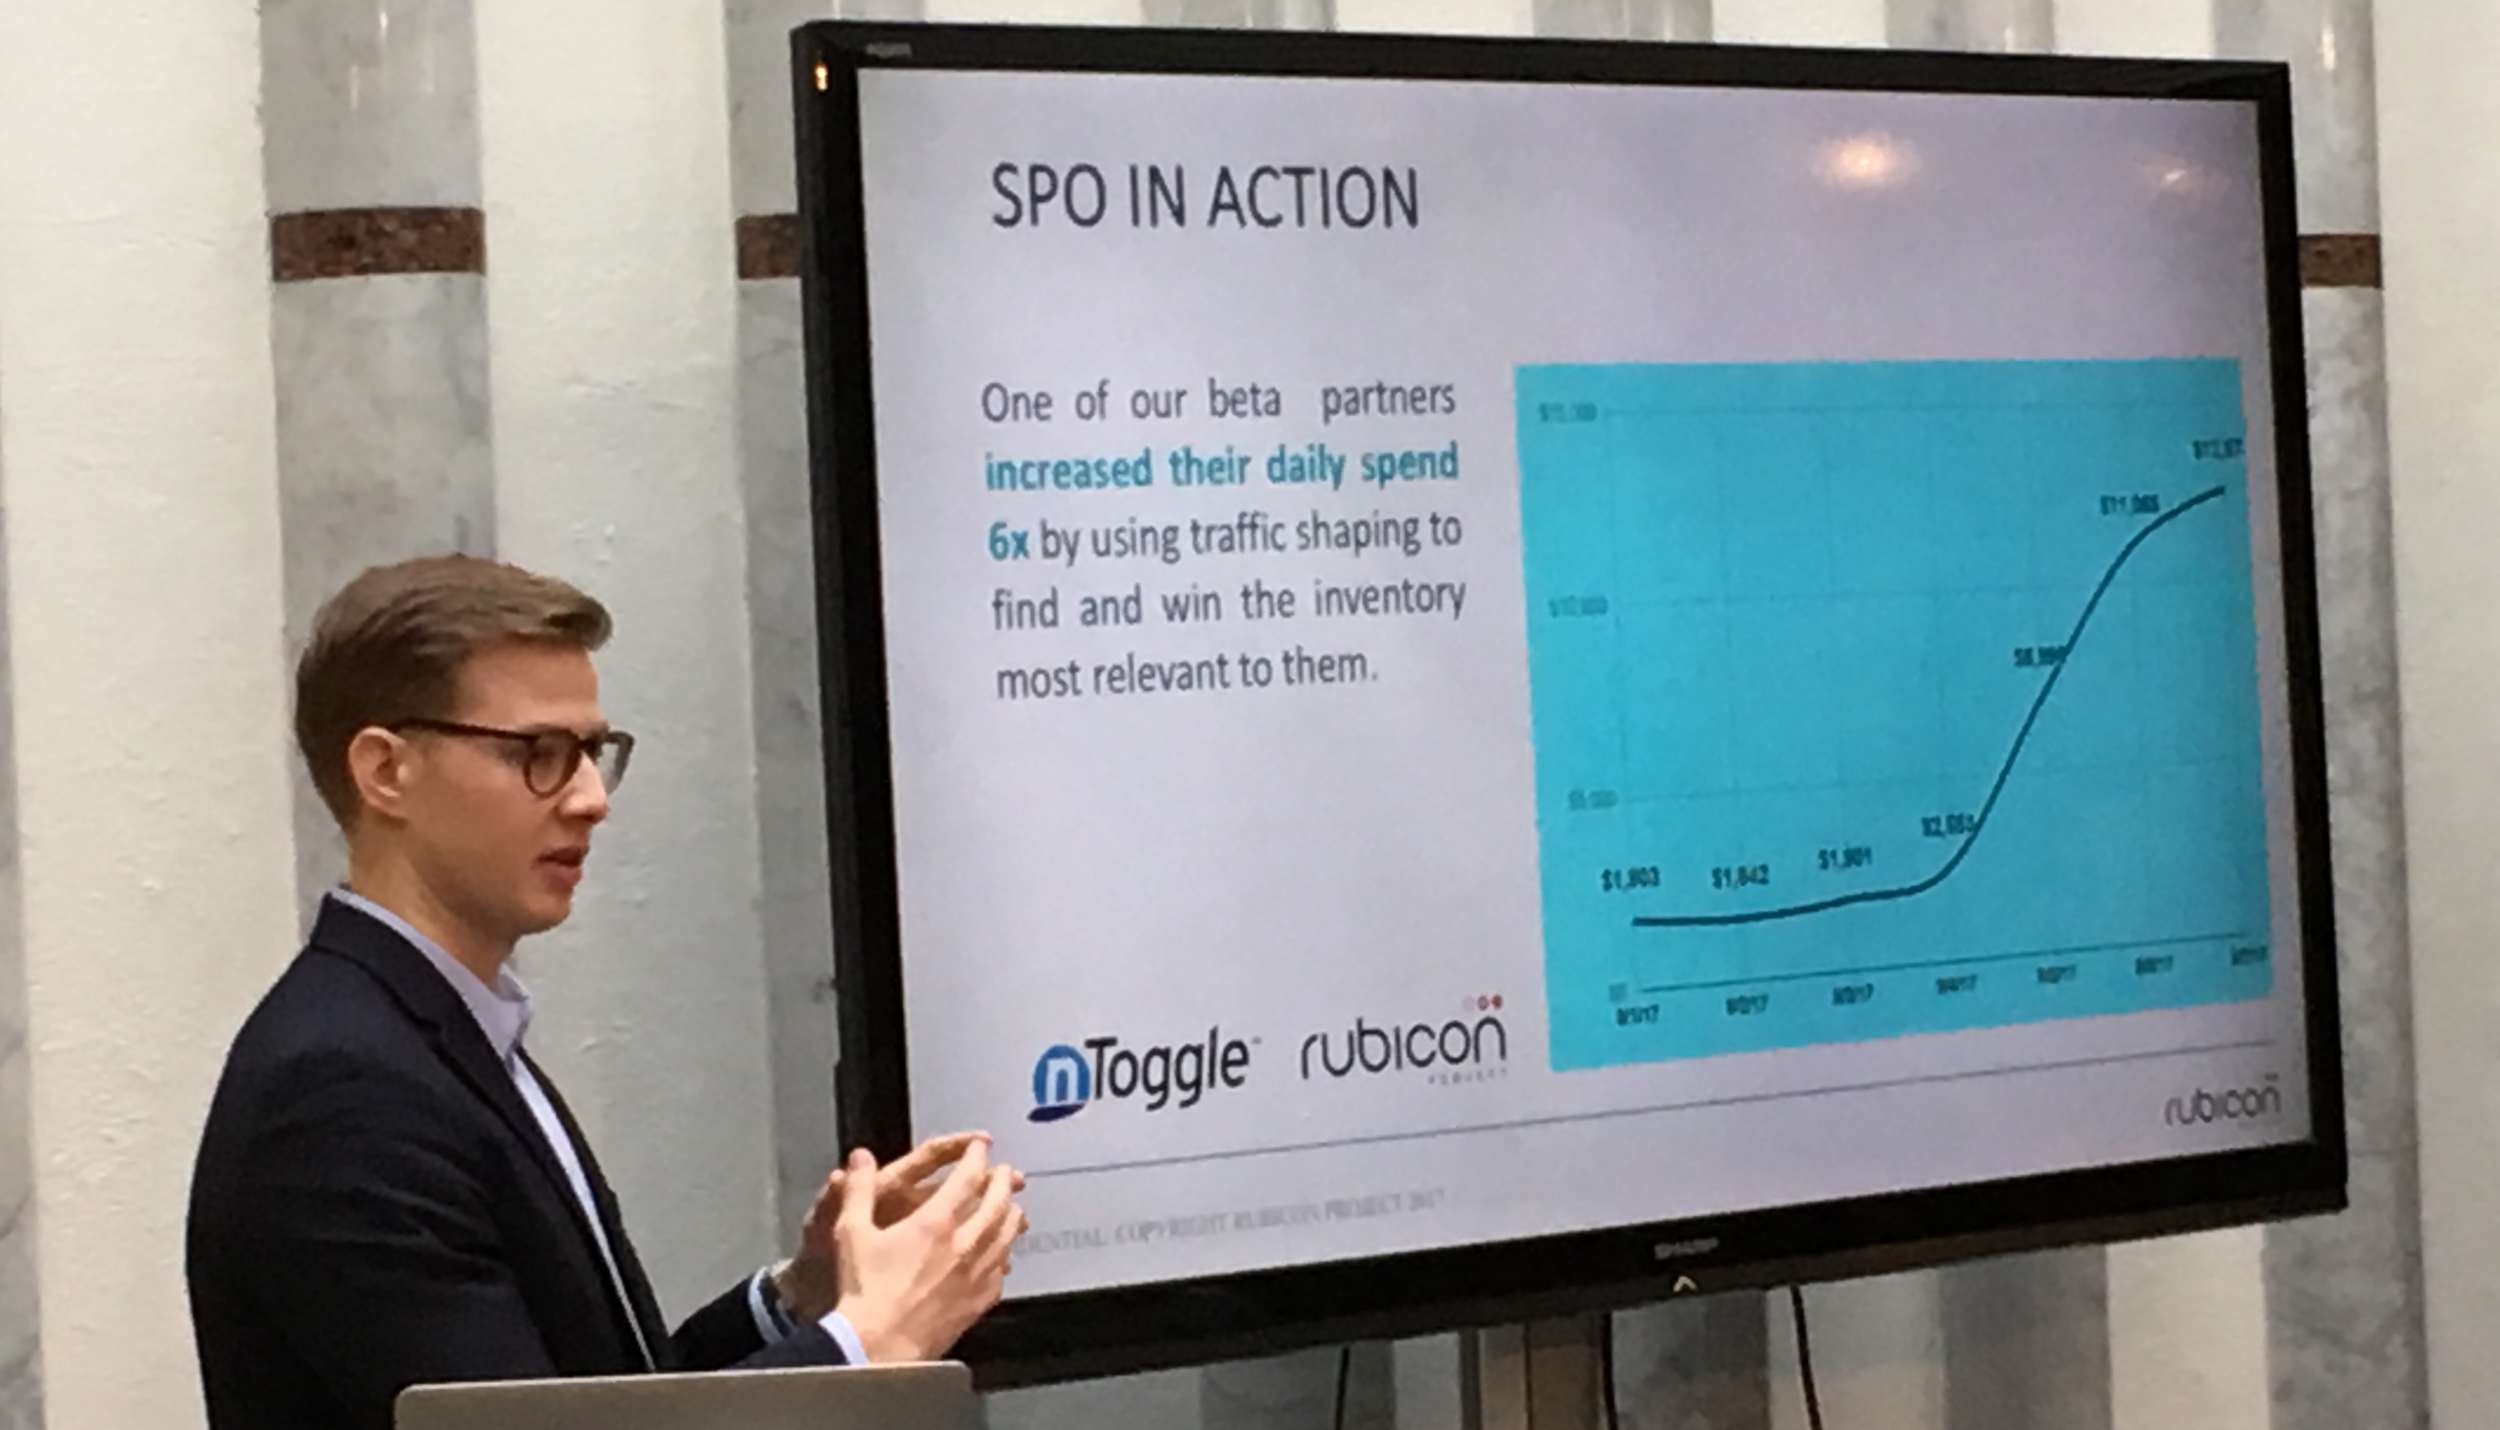 Netric Account Director Victor Hammarstrand shows the benefits of SPO